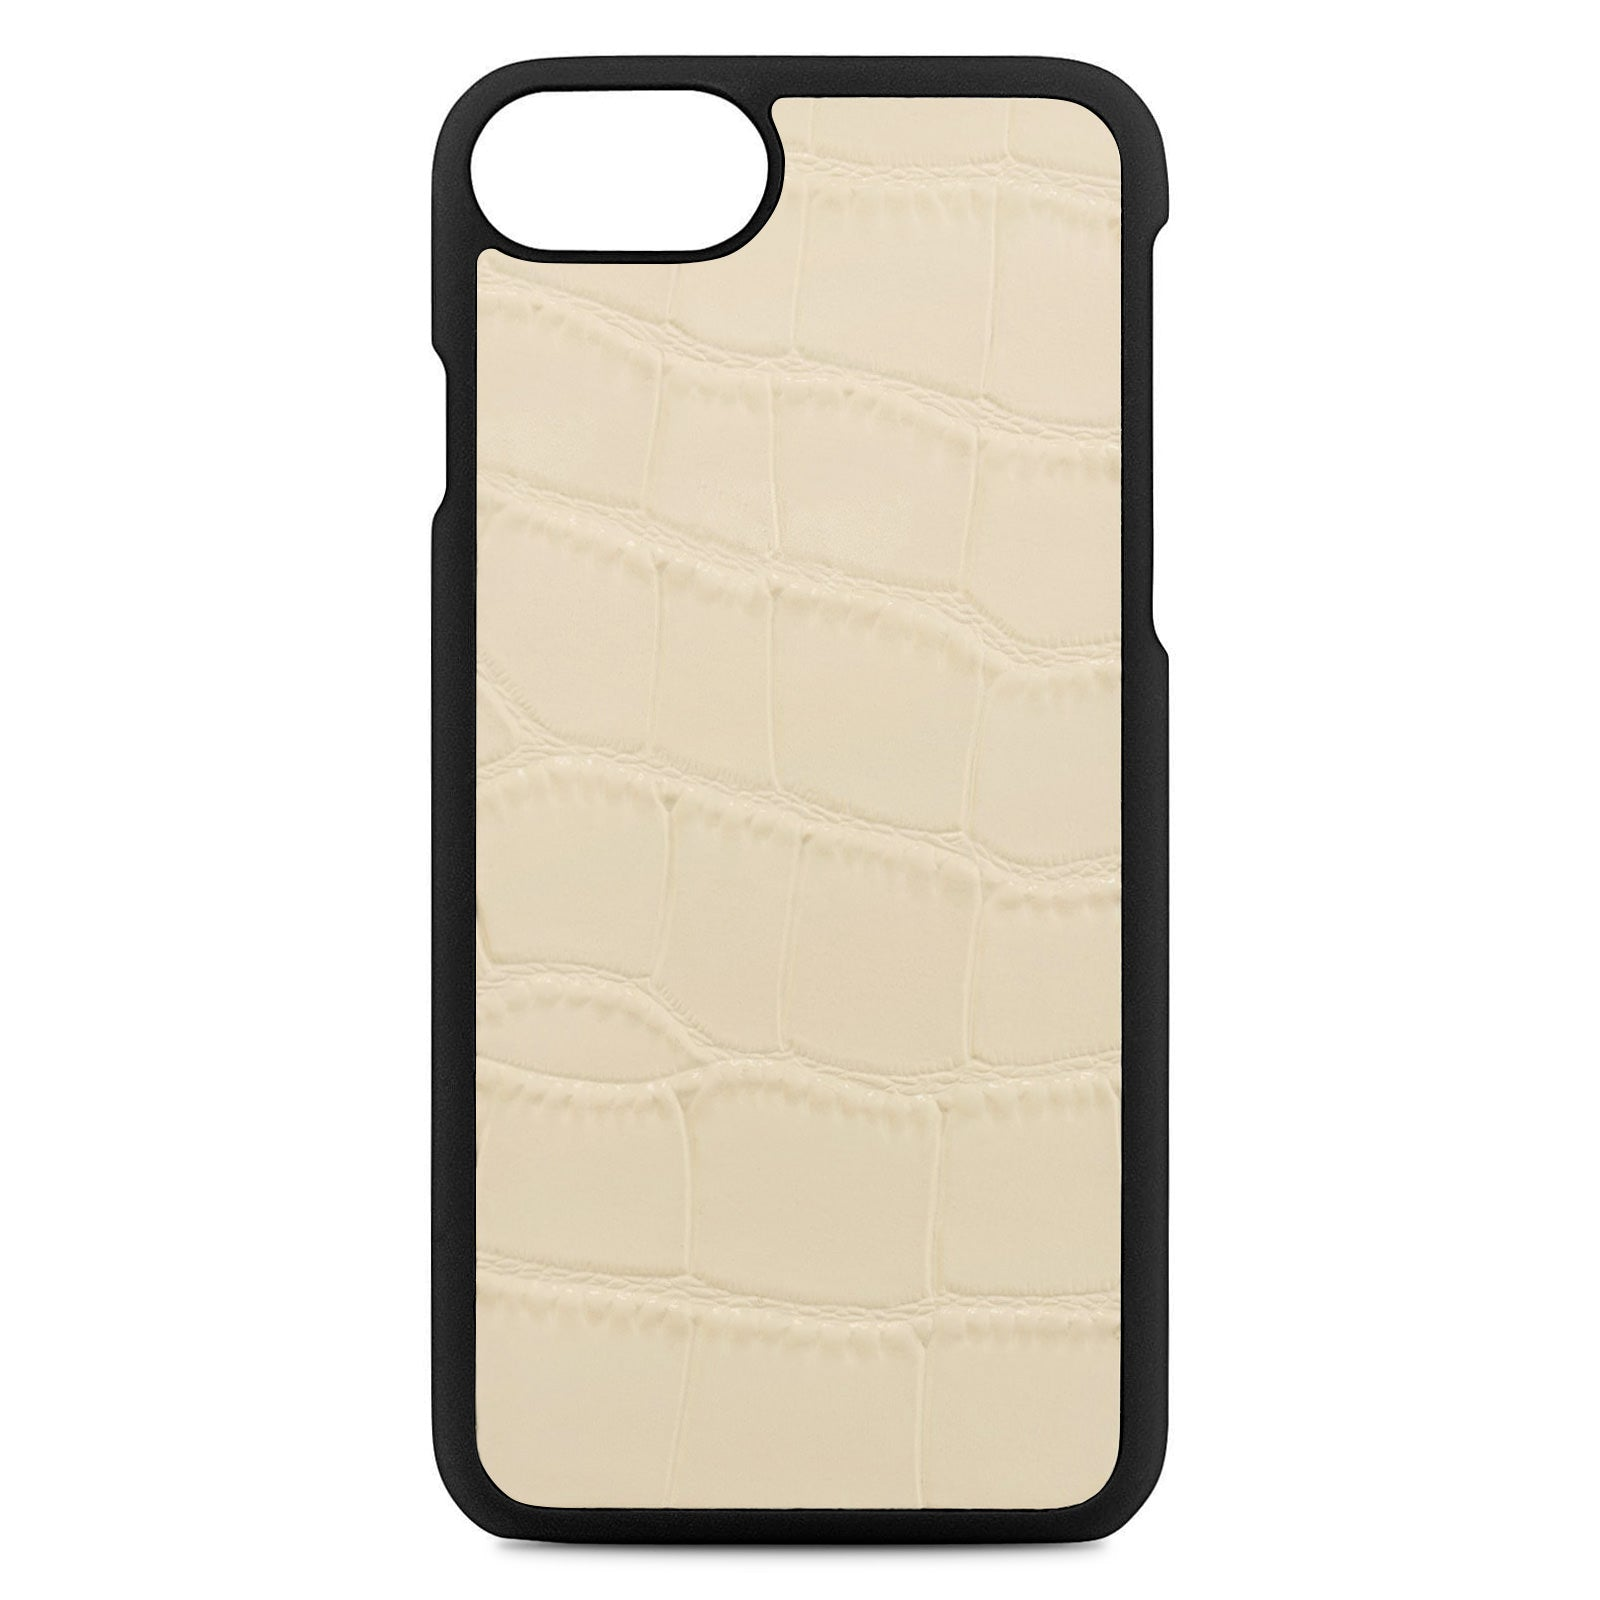 Blank Personalised Ivory Croc Leather iPhone Case